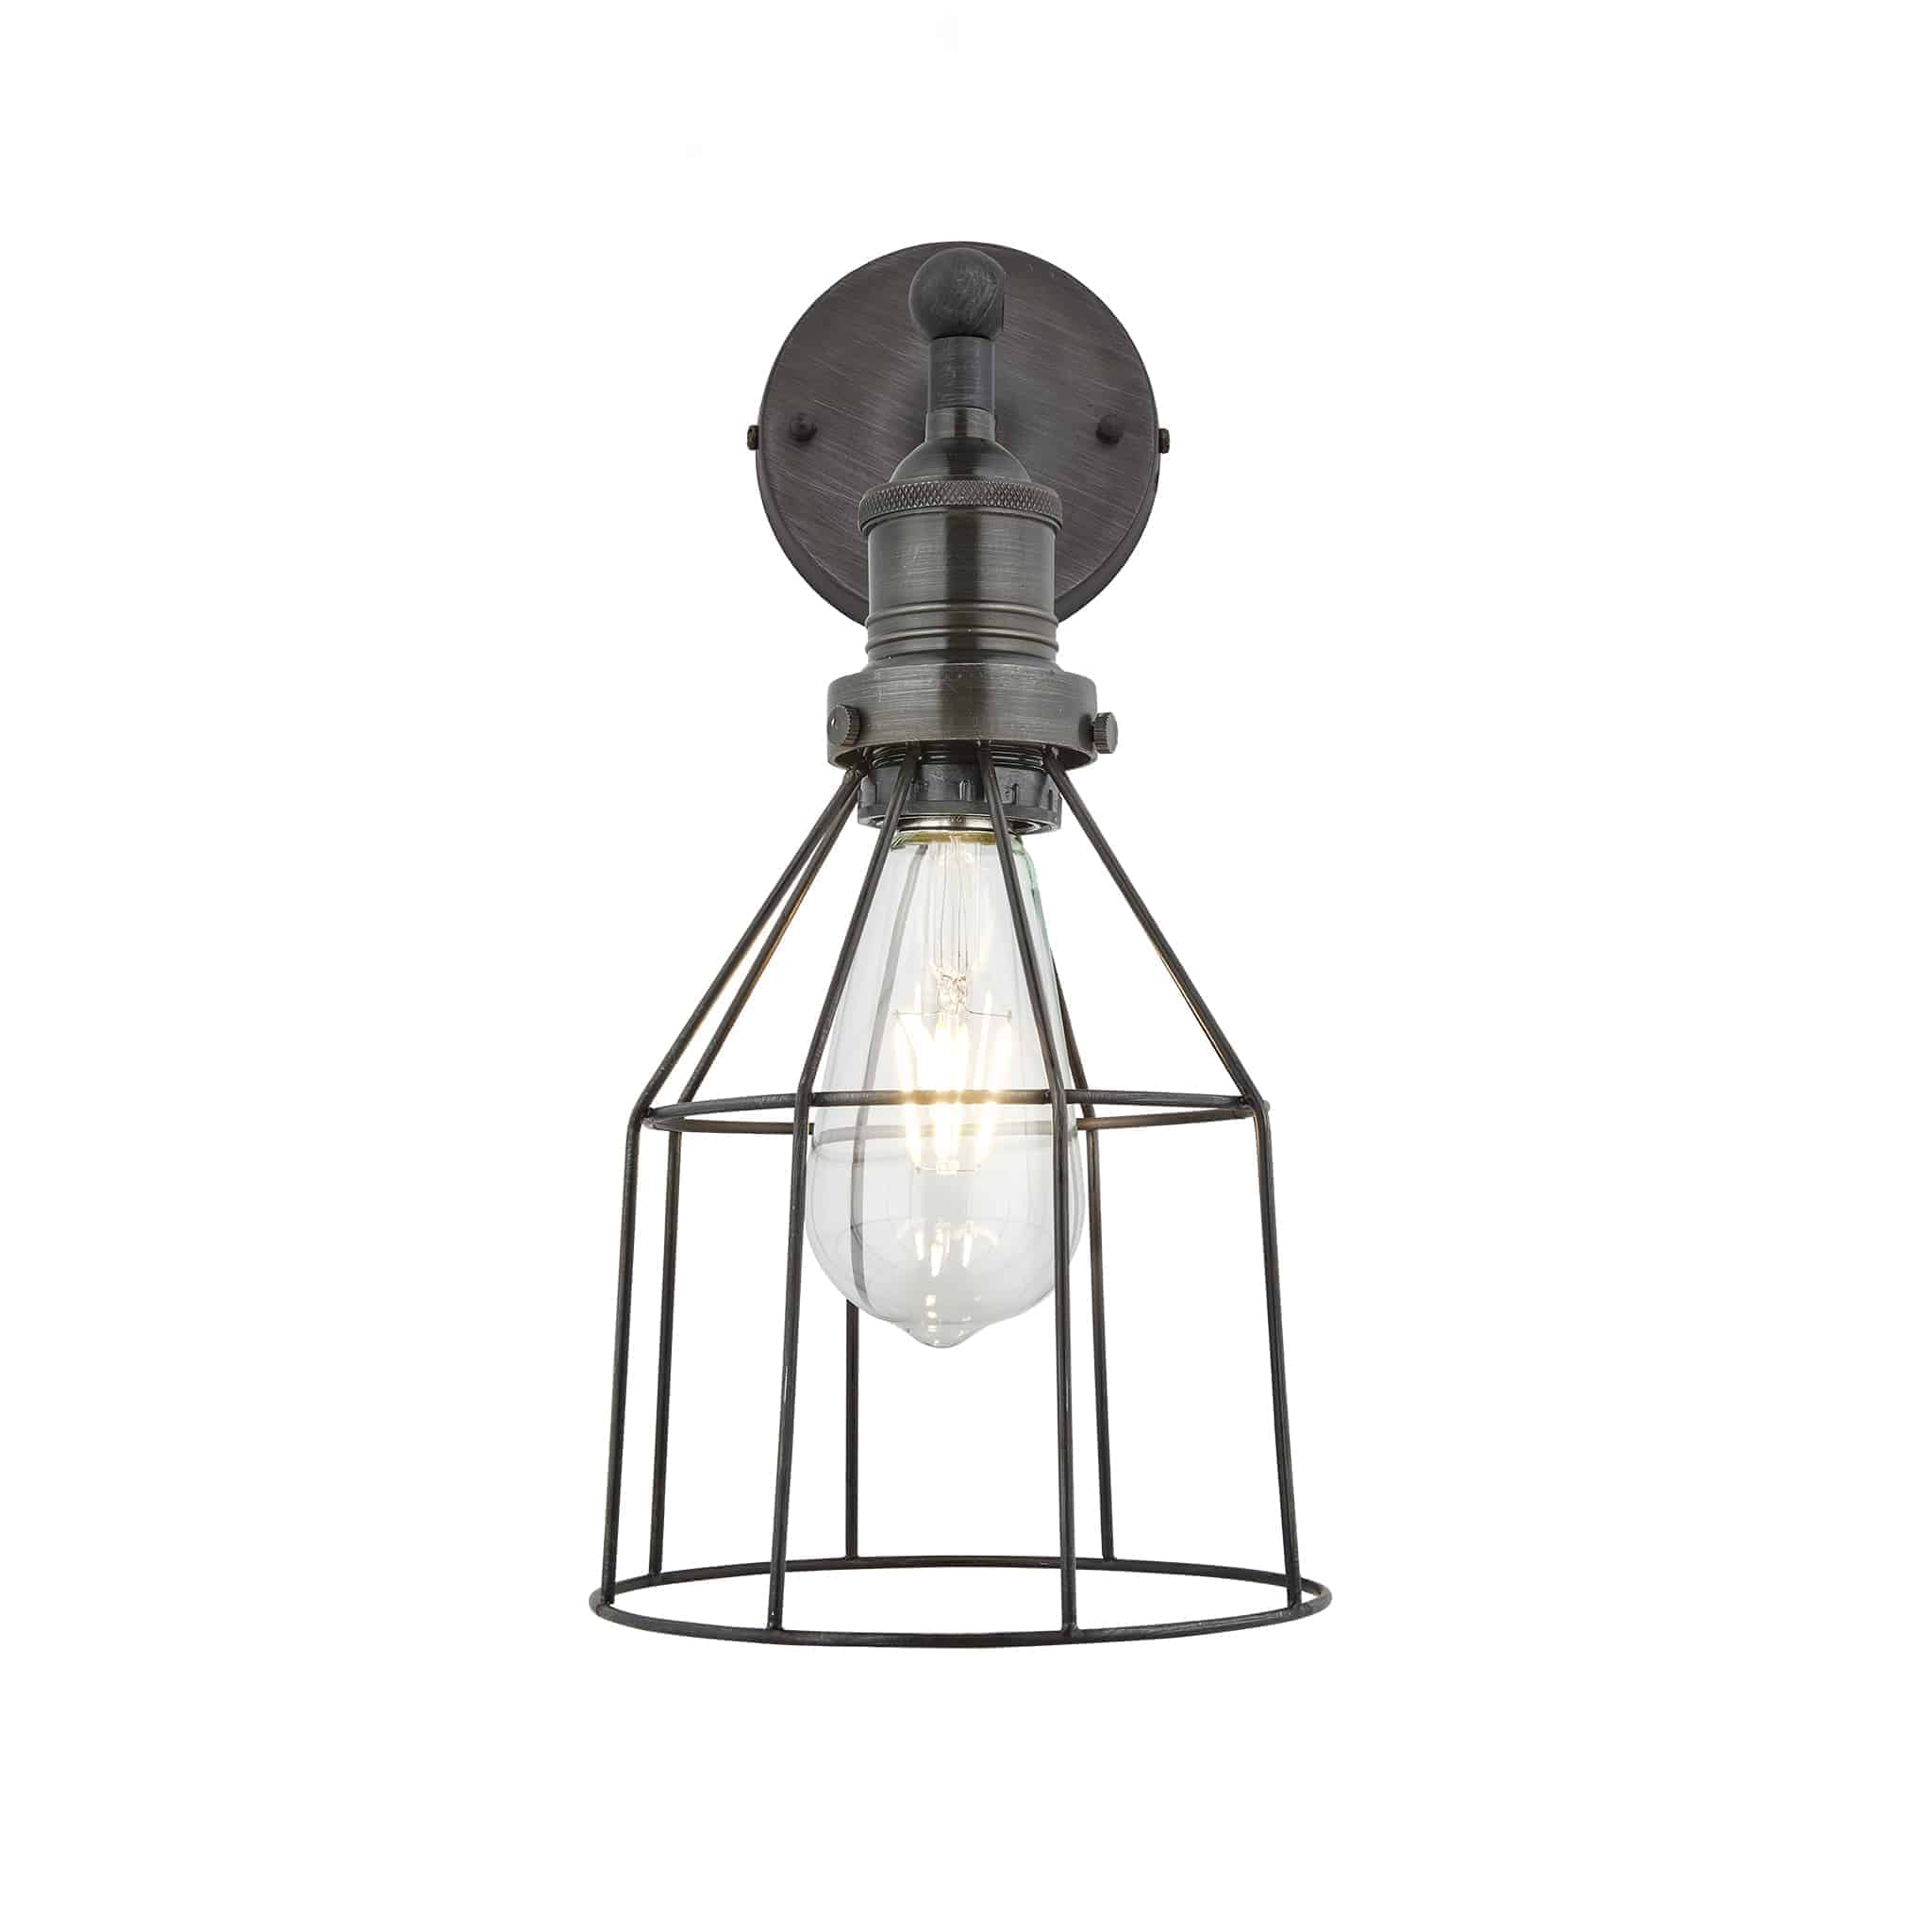 Industville Brooklyn Wire Cage Wall Light - 6 Inch - Pewter - Cone - Pewter Holder